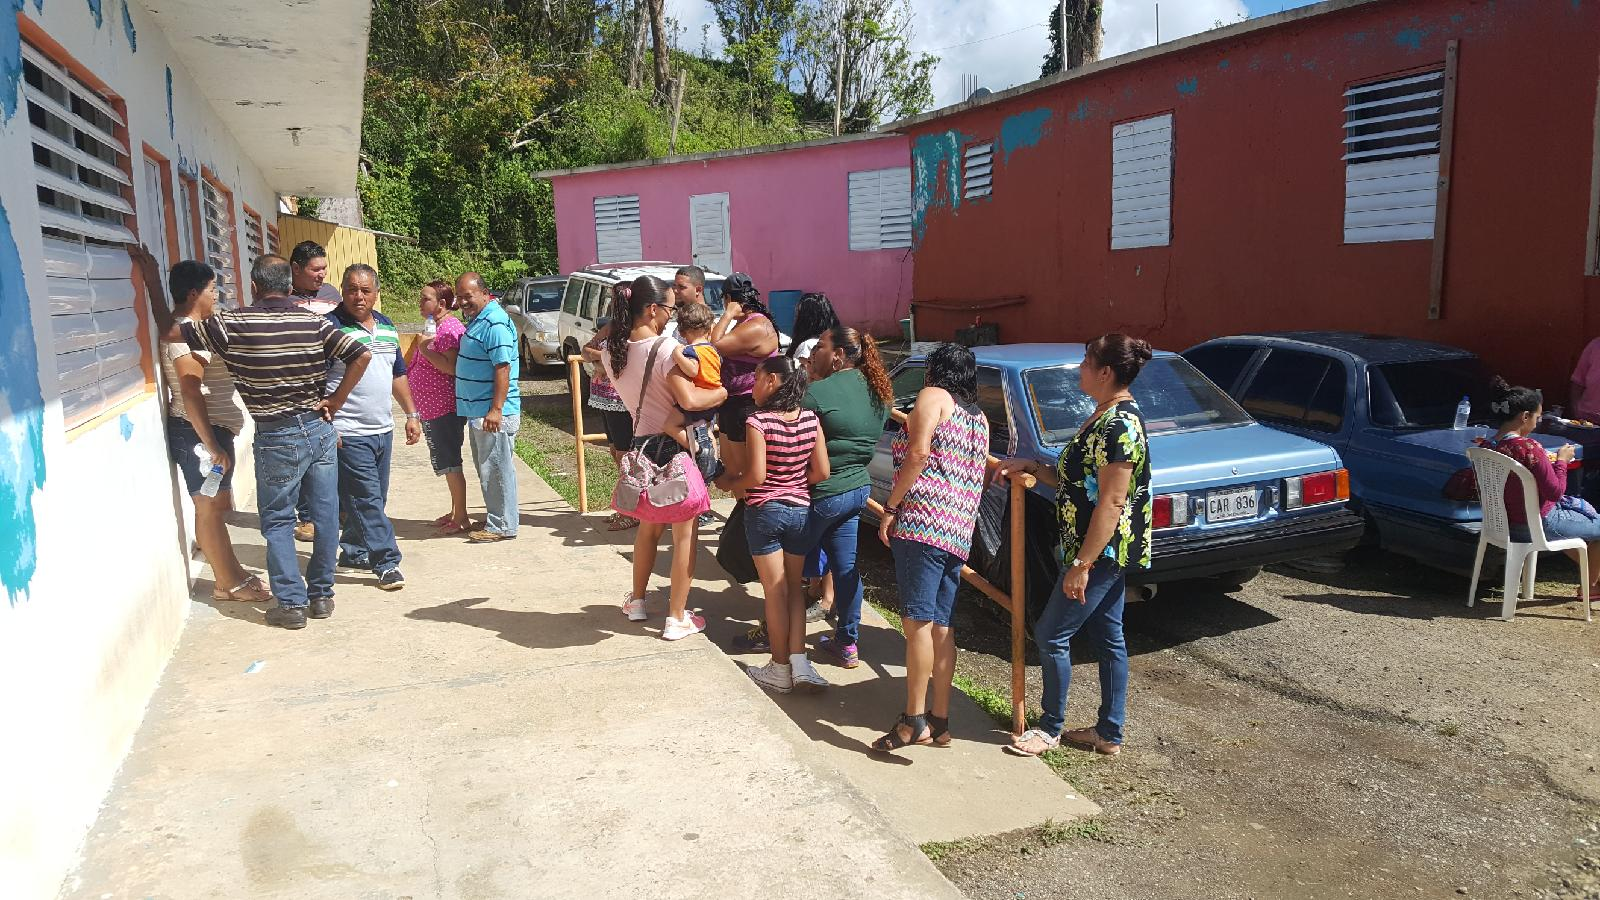 Patrons waiting in line in Yauco, PR for medical services and basic supplies such as lanterns, blankets, and formula.